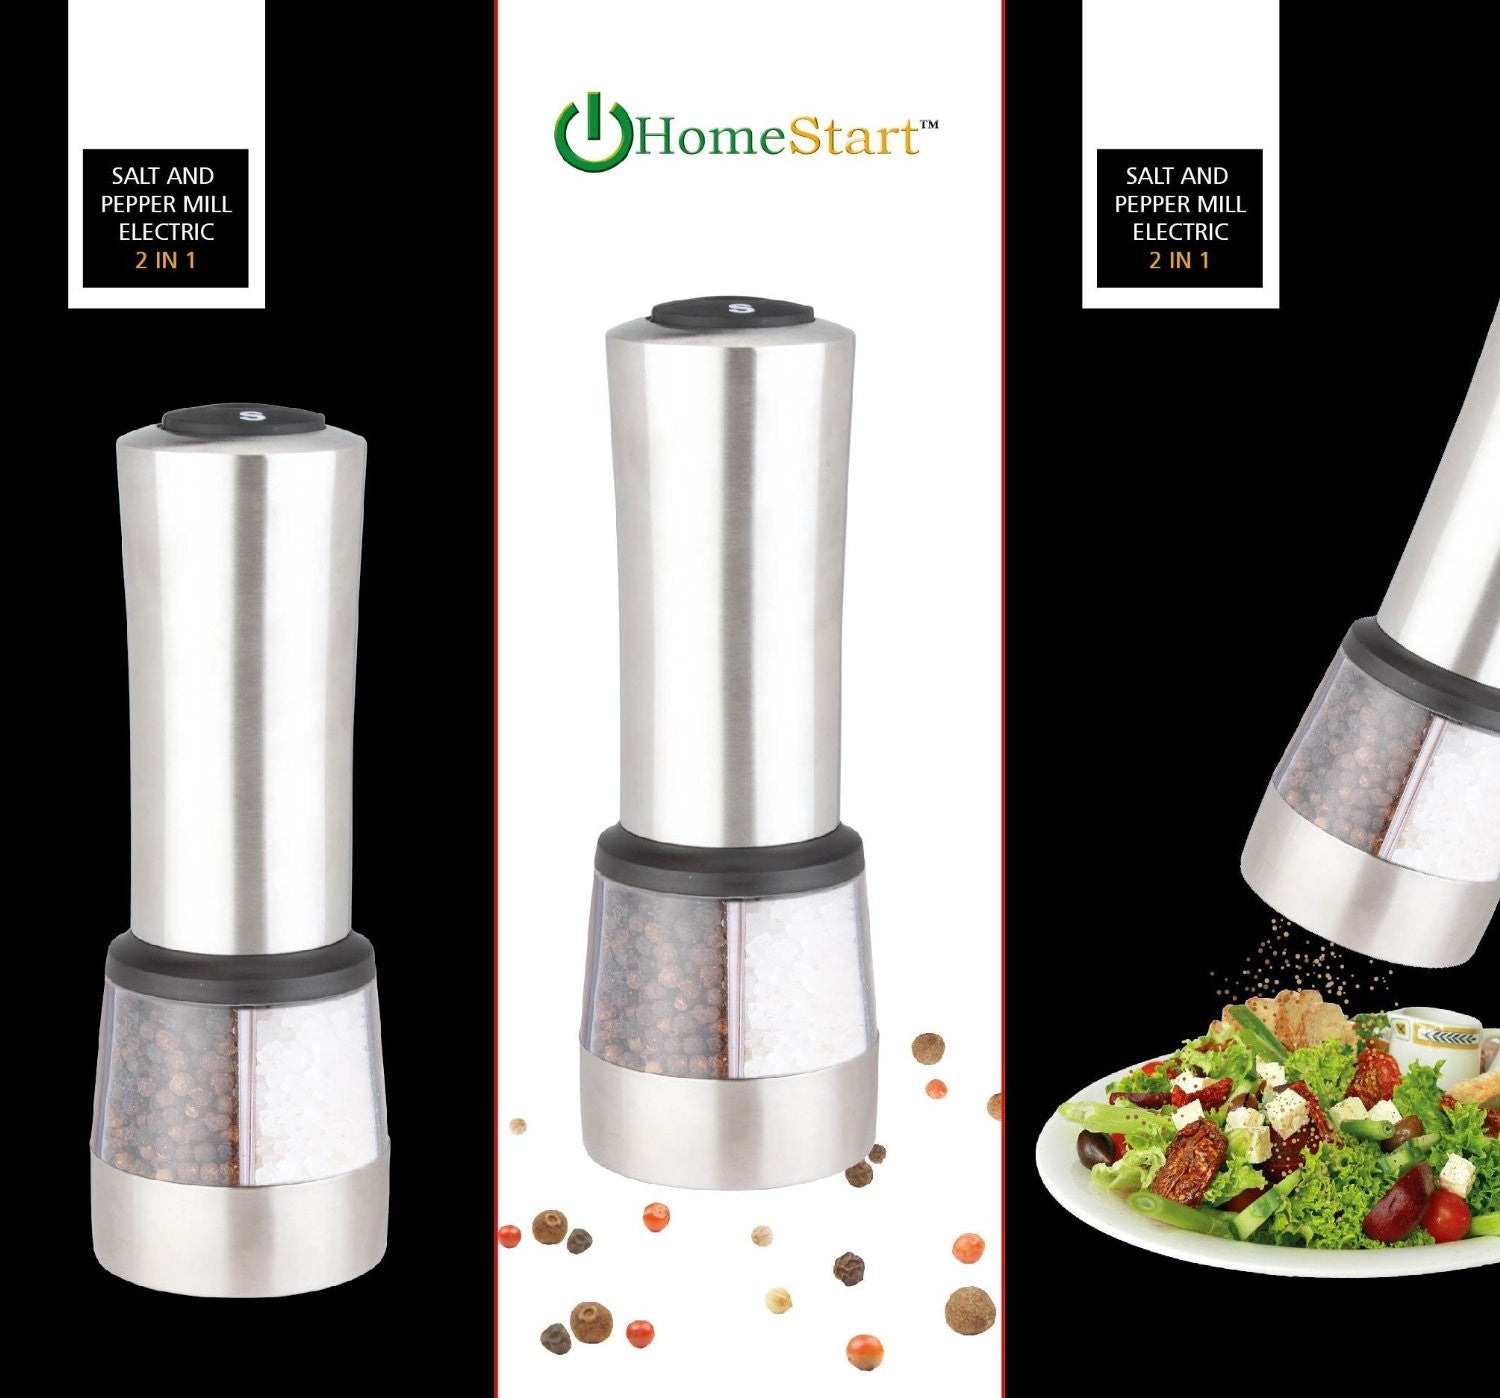 HomeStart 2 in 1 Electric Salt & Pepper Grinder Stainless Steel